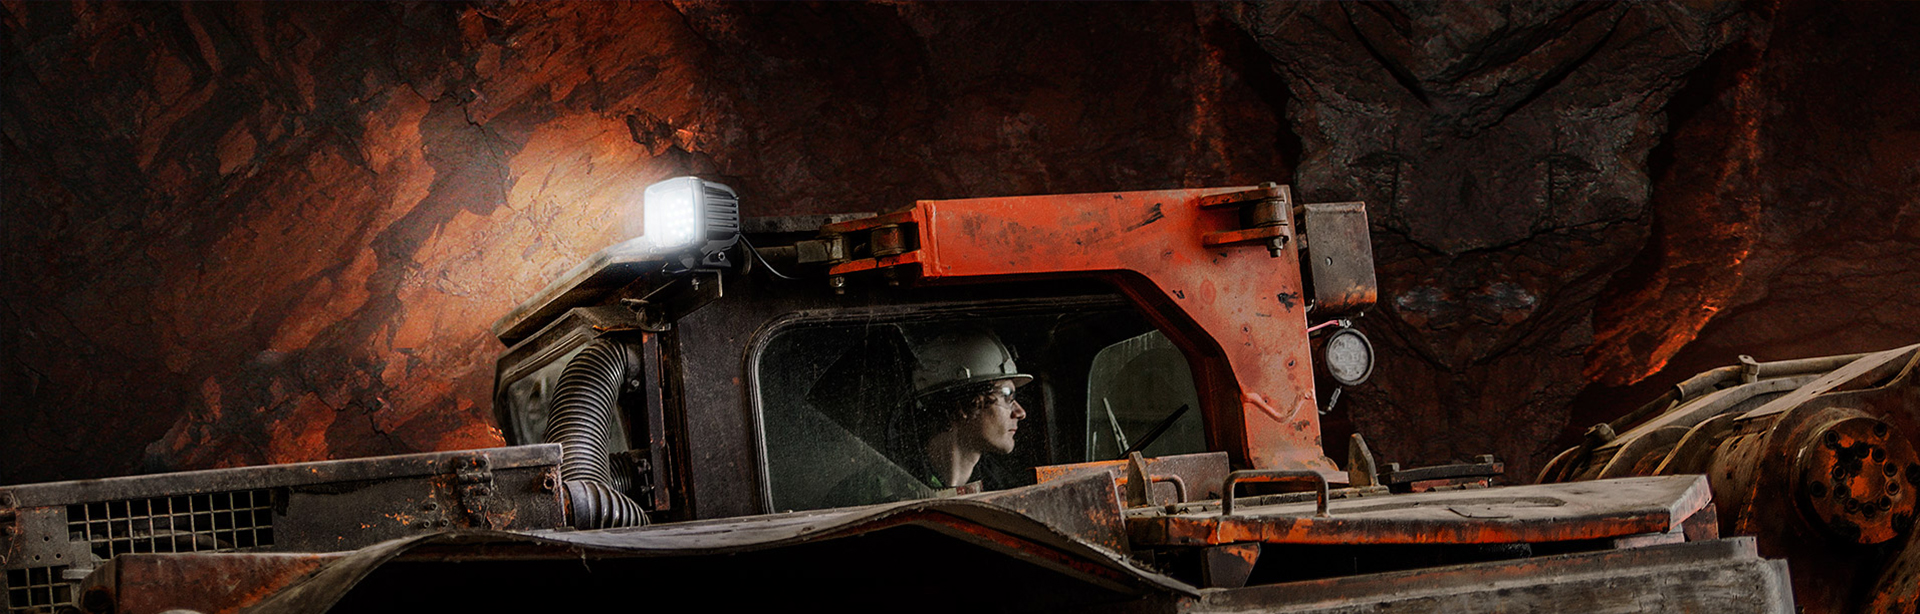 AC2 Mining Lead Light in application, installed in an underground mine